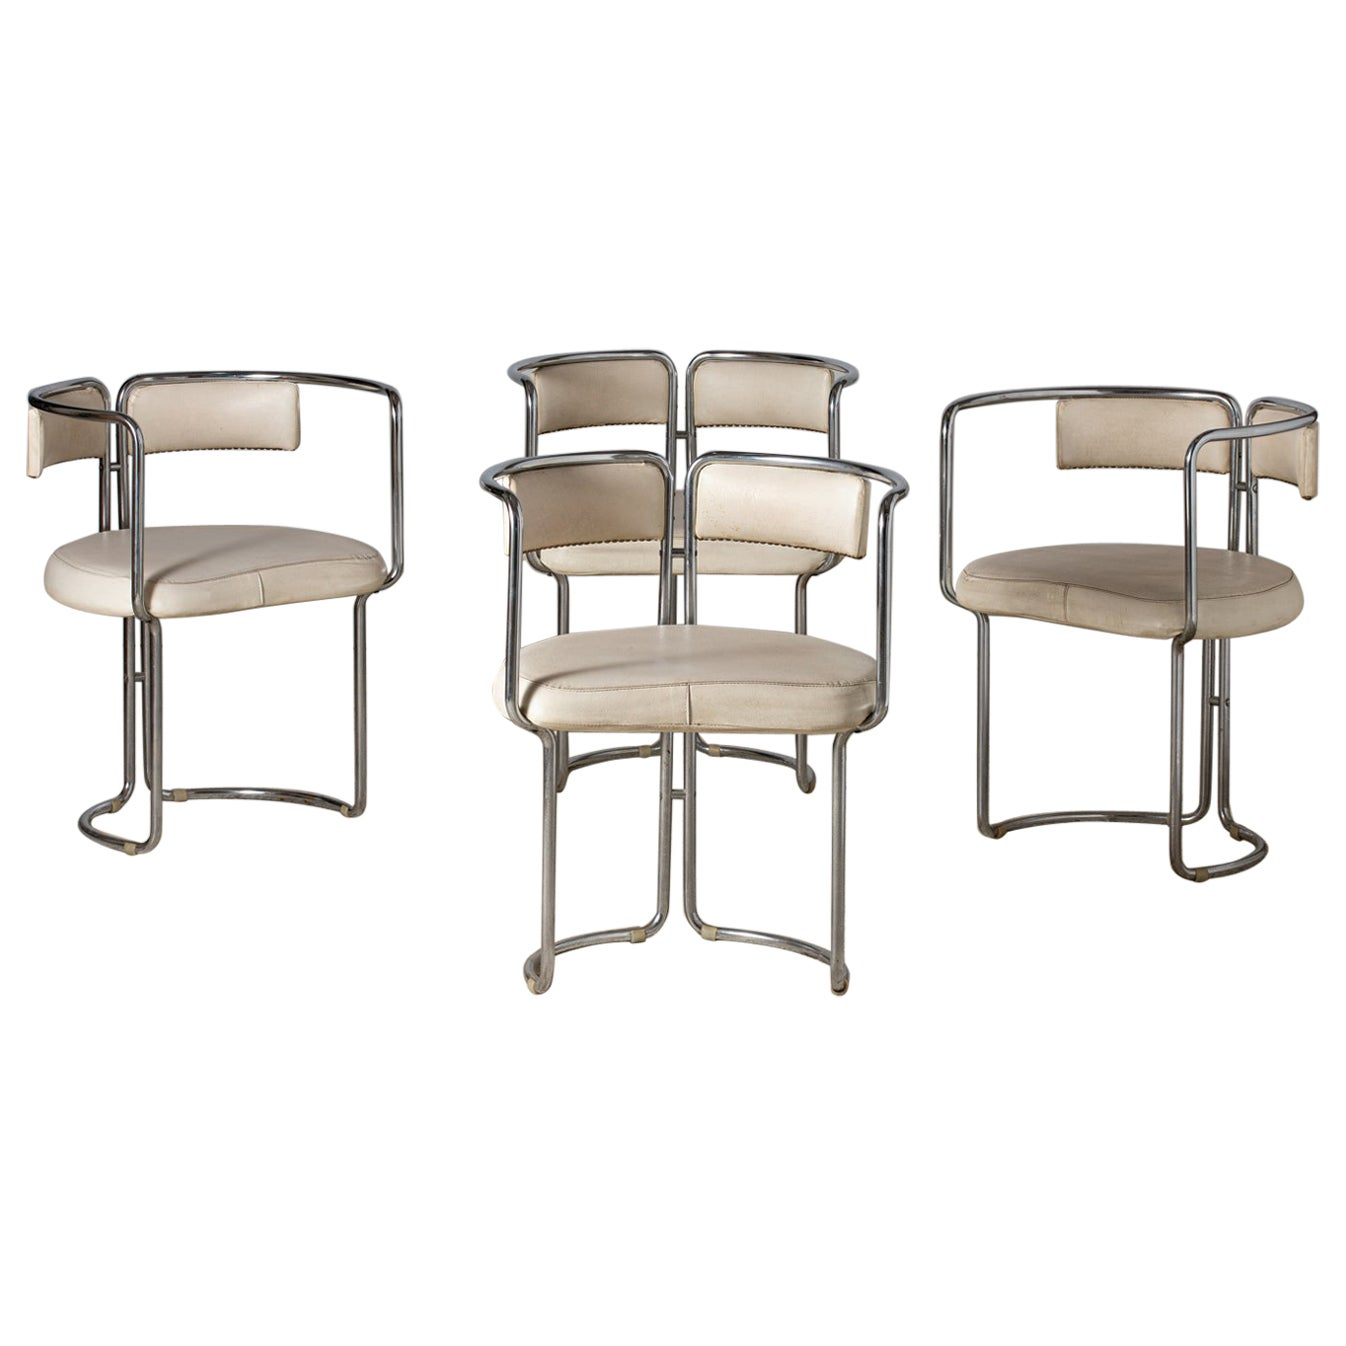 Four Dining Room Armchairs, Italy, 1970